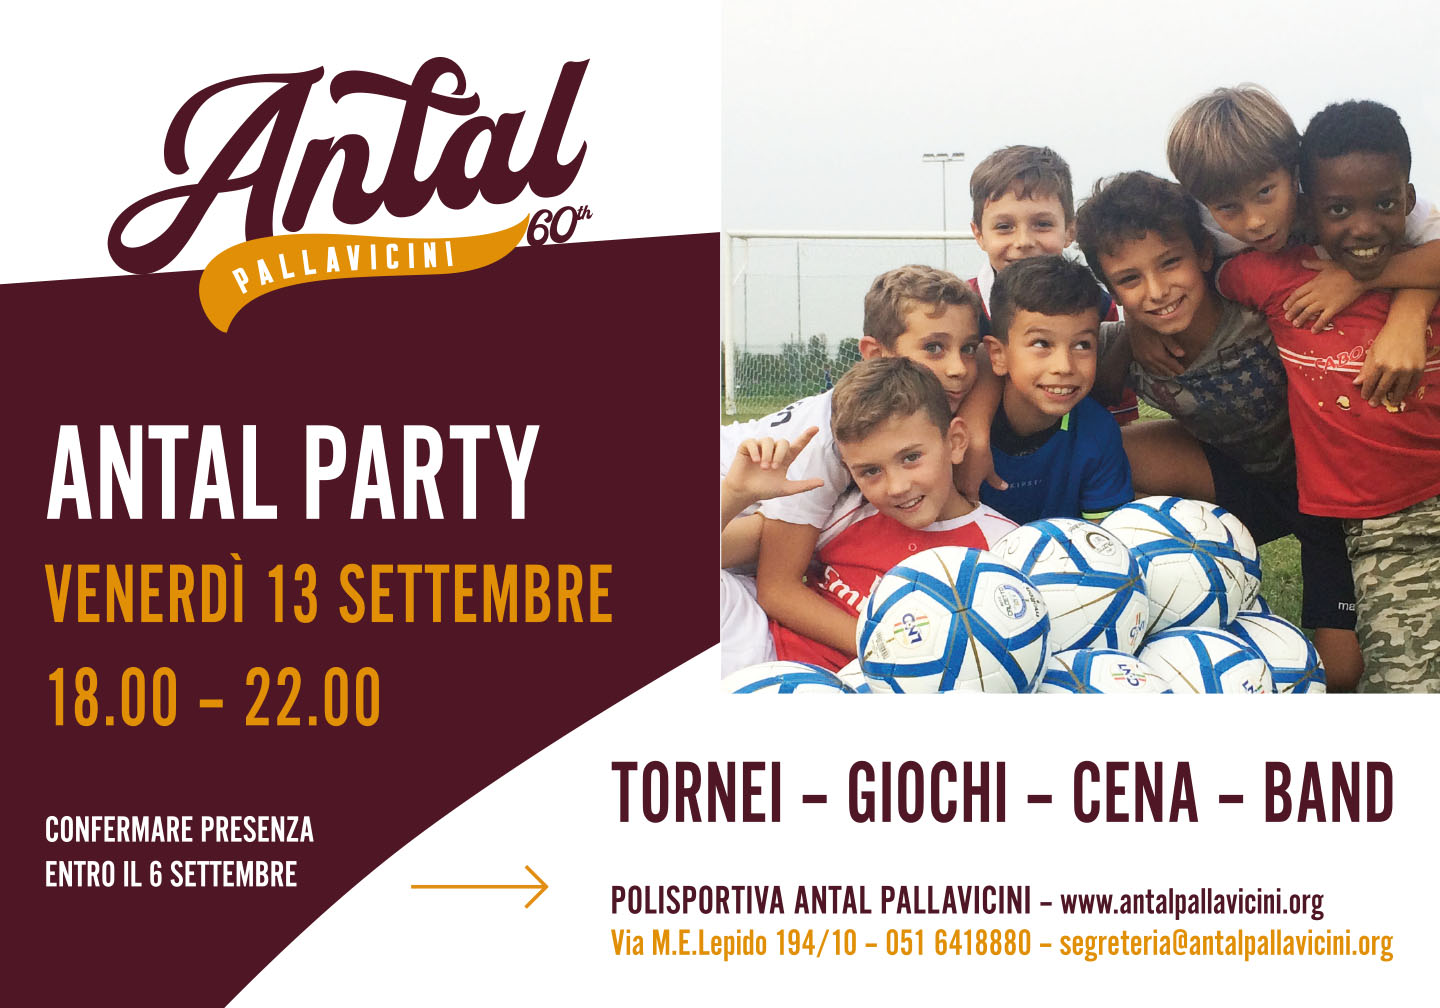 Antal Party 13 settembre 2019